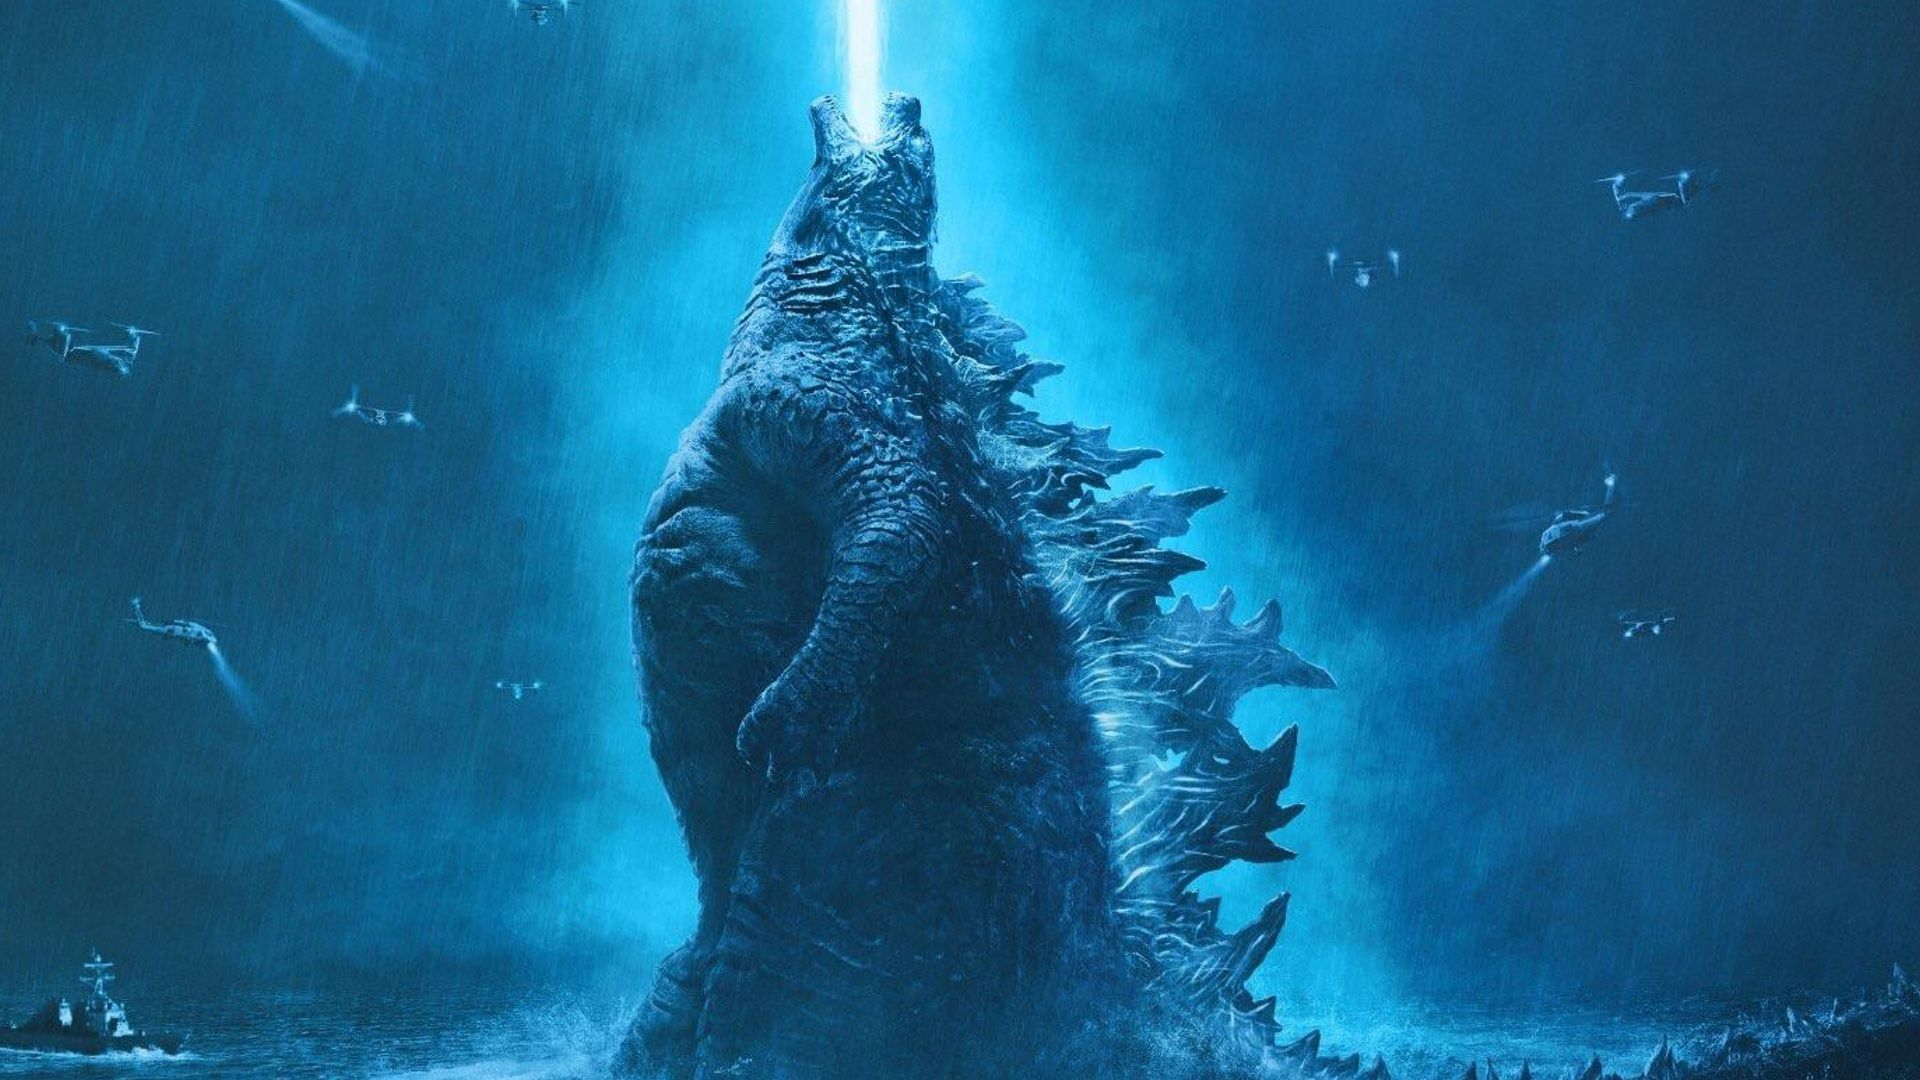 bask-in-the-glory-of-this-new-poster-for-godzilla-king-of-the-monsters-social